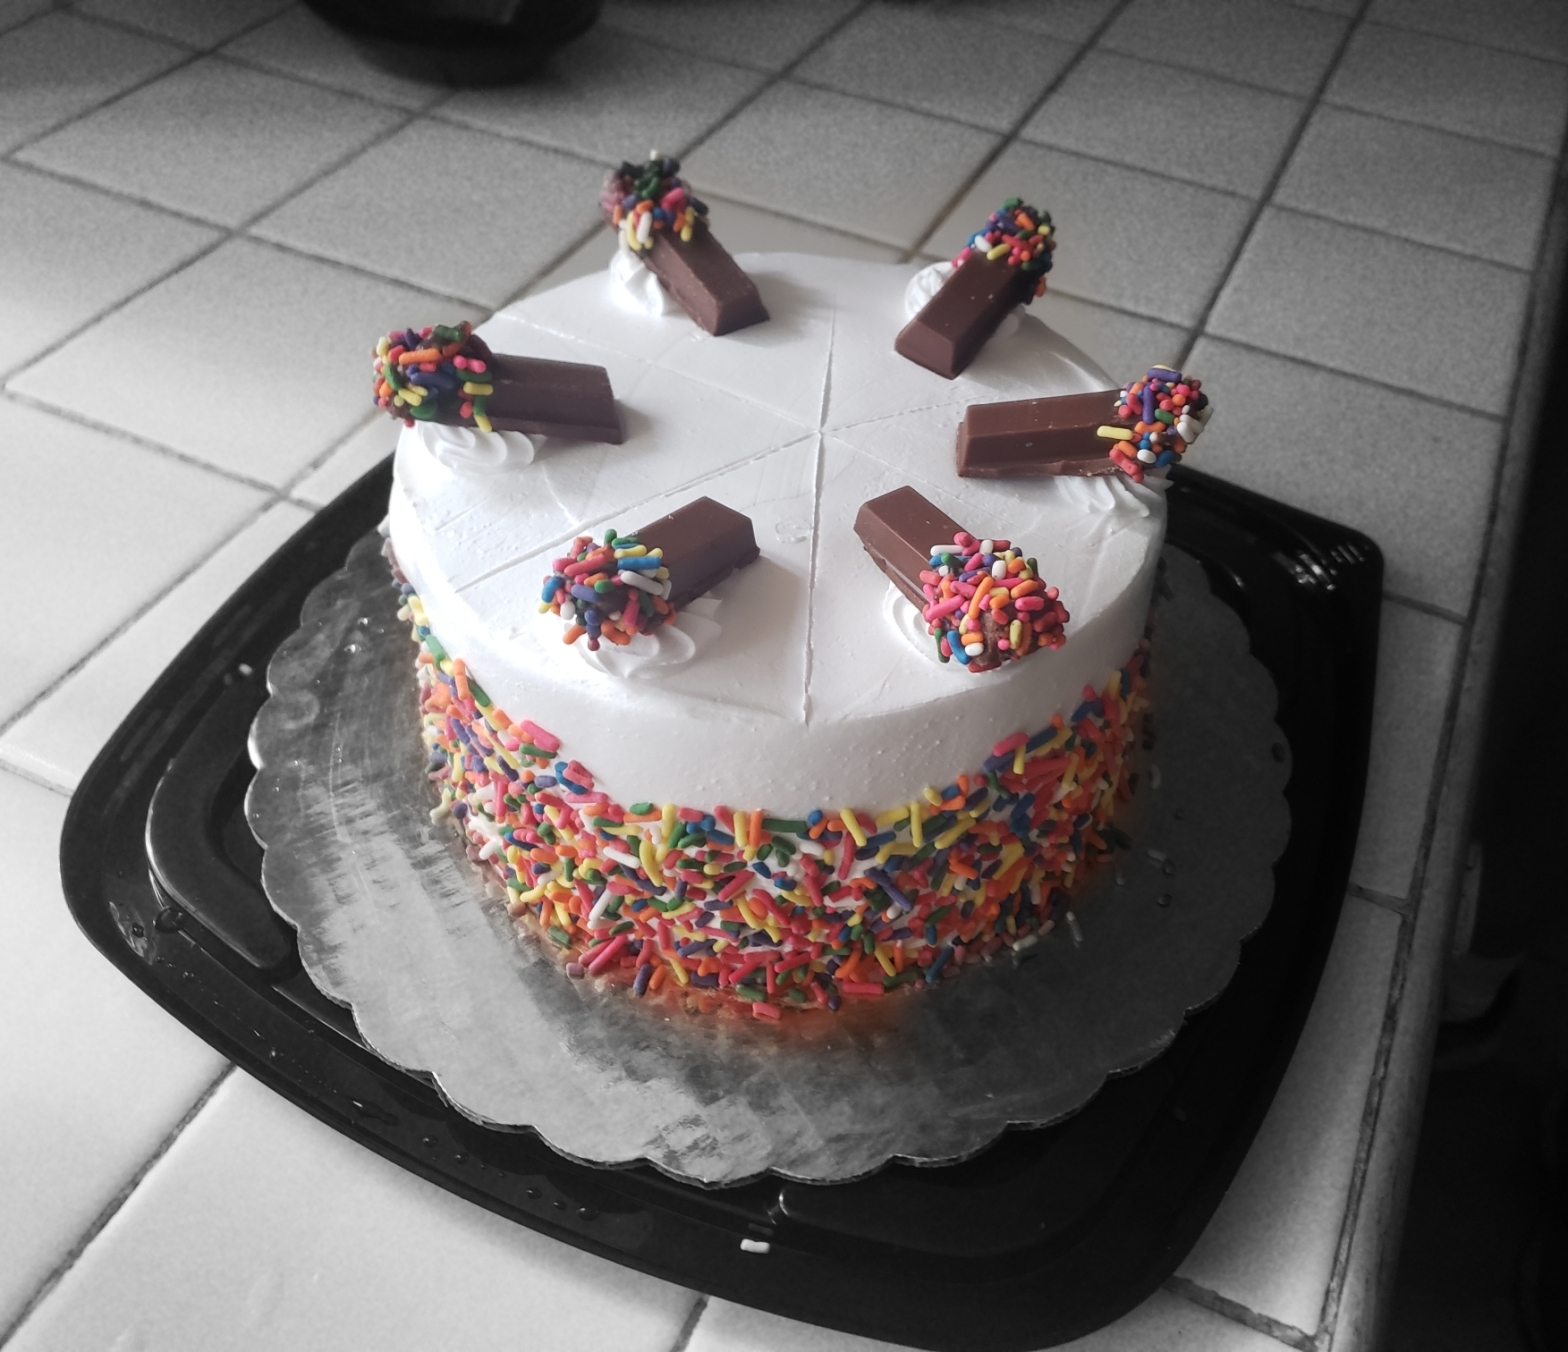 A cake with rainbow sprinkles sots on a counter, waiting to be devoured. The cake is topped with chocolate wafer candies that also have rainbow sprinkles.